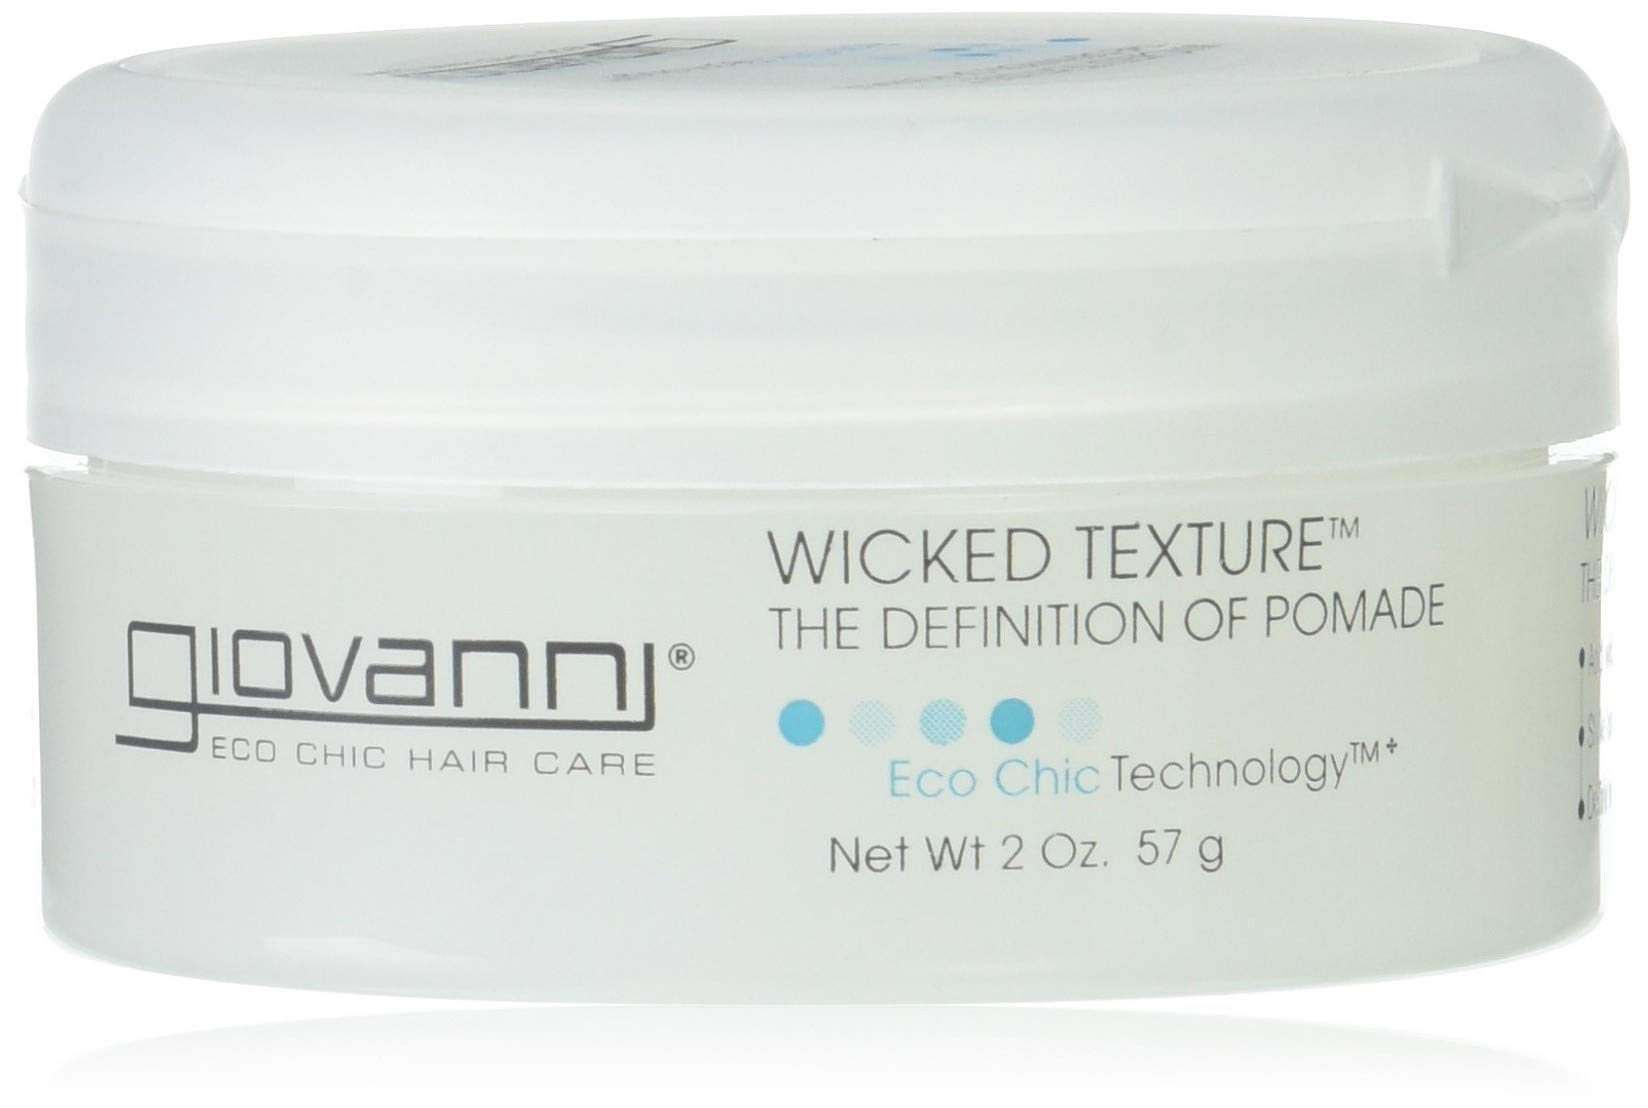 Giovanni Styling Glue Custom Hair Modeler 2 Oz 3 Pack Pomade Oilbased Medium Hold 55gr Non Label Eco Chic Wicked Texture The Definition Of Texturizer